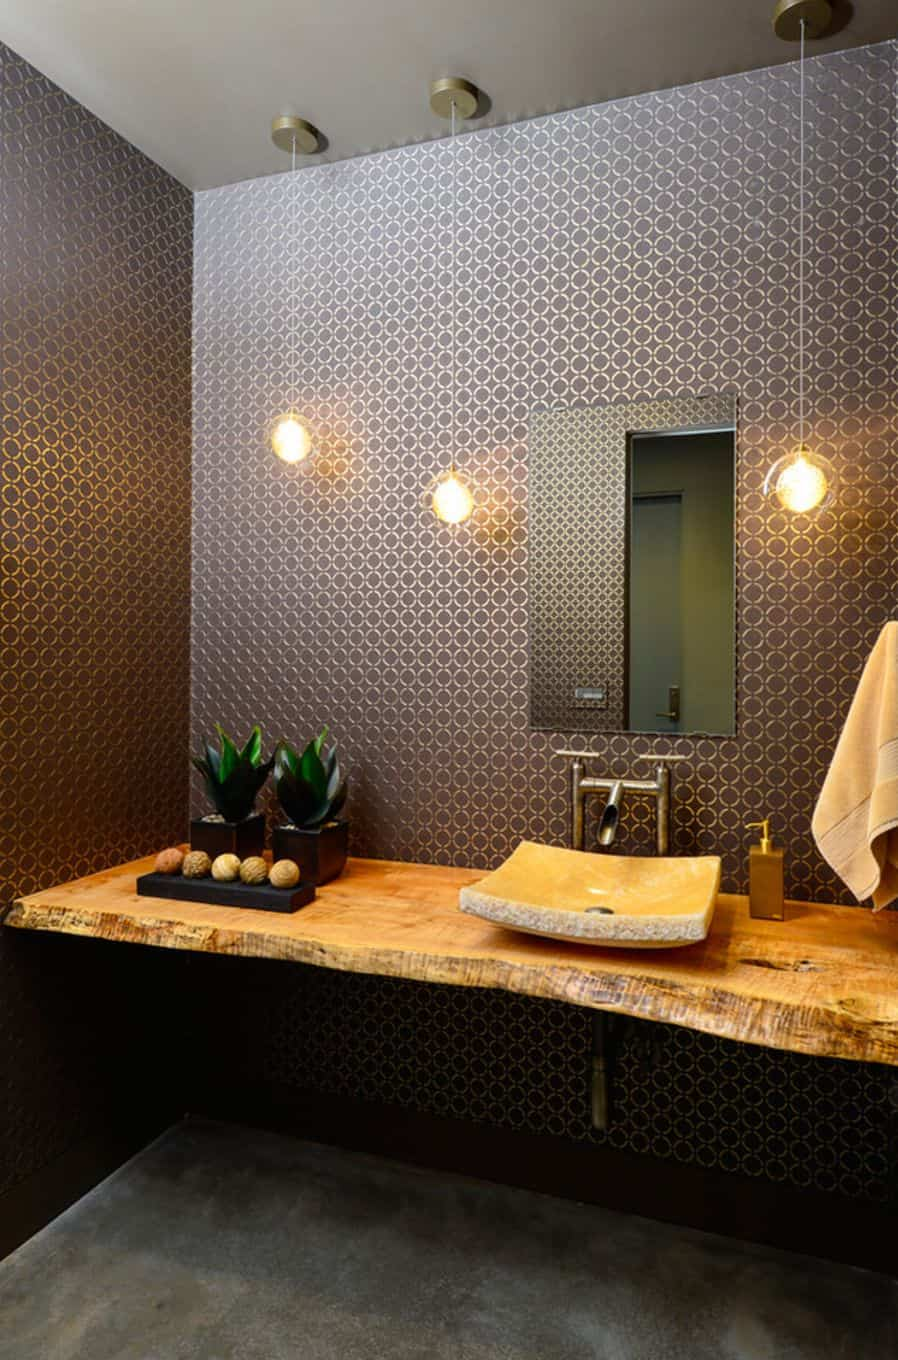 Increase available counter space with this small sink in a modern style.